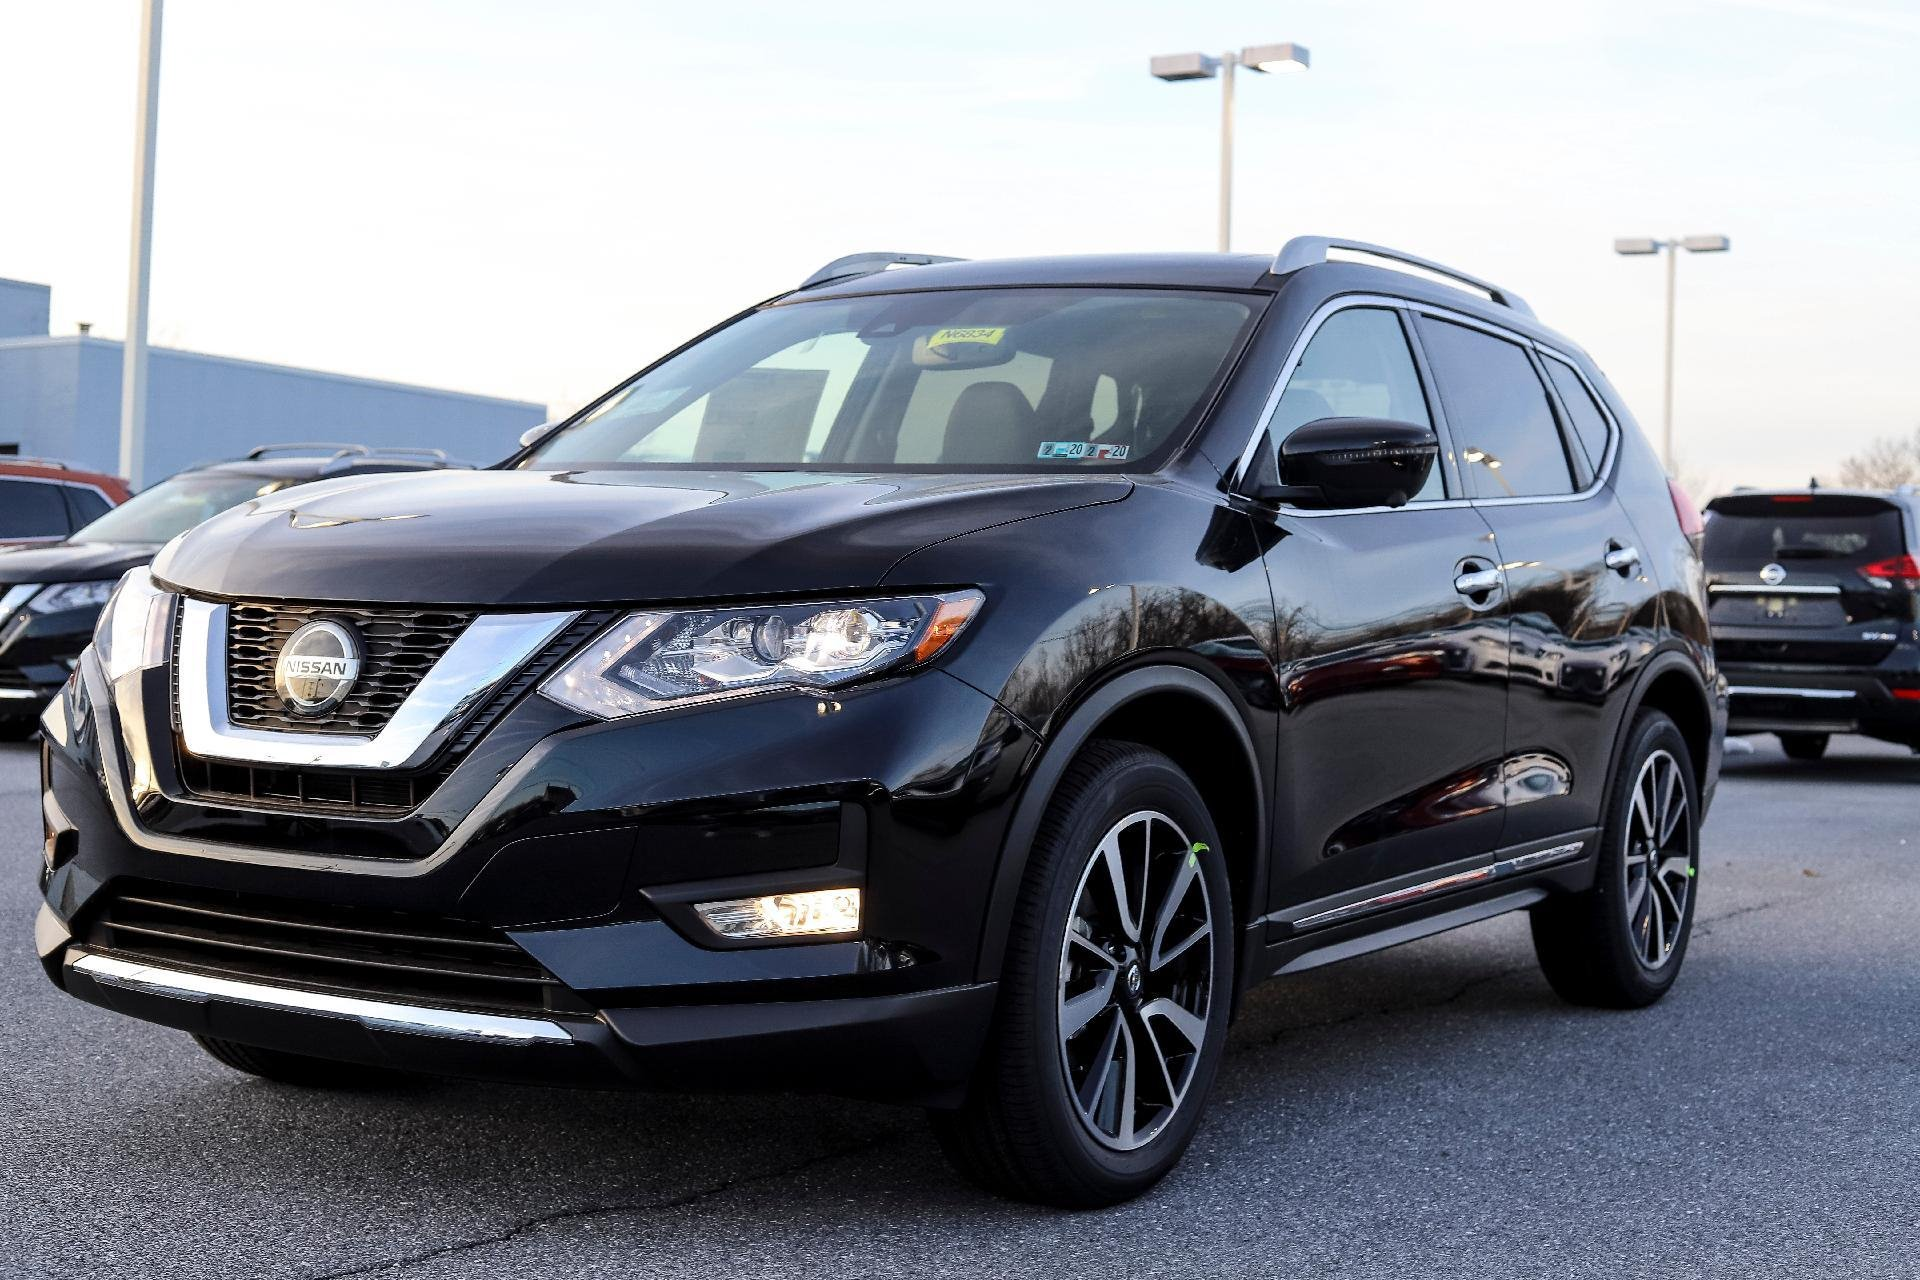 New 2019 Nissan Rogue S S for sale $26,370 at M and V Leasing in Brooklyn NY 11223 1